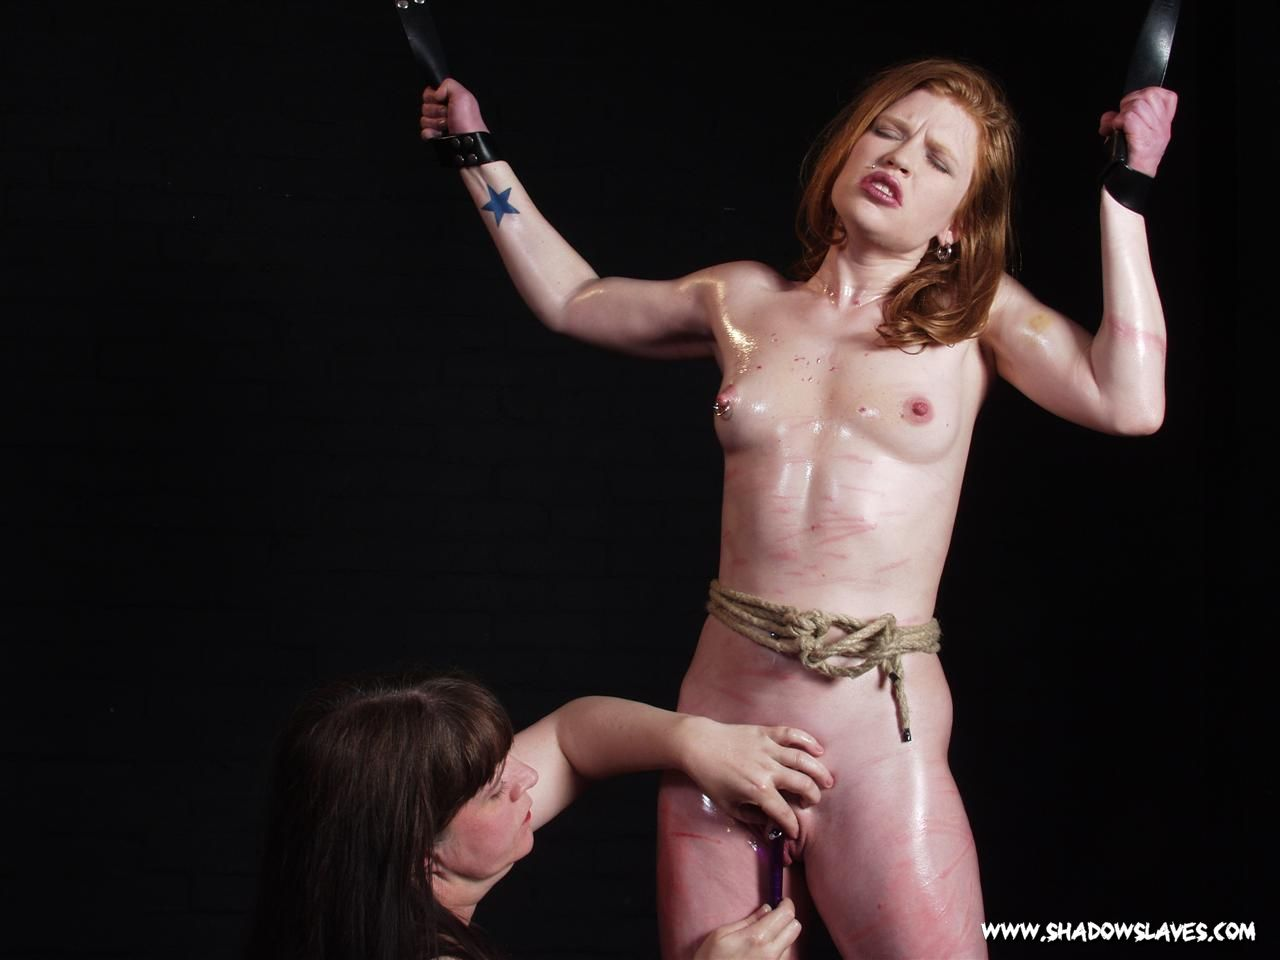 Extreme bondage and domination pics